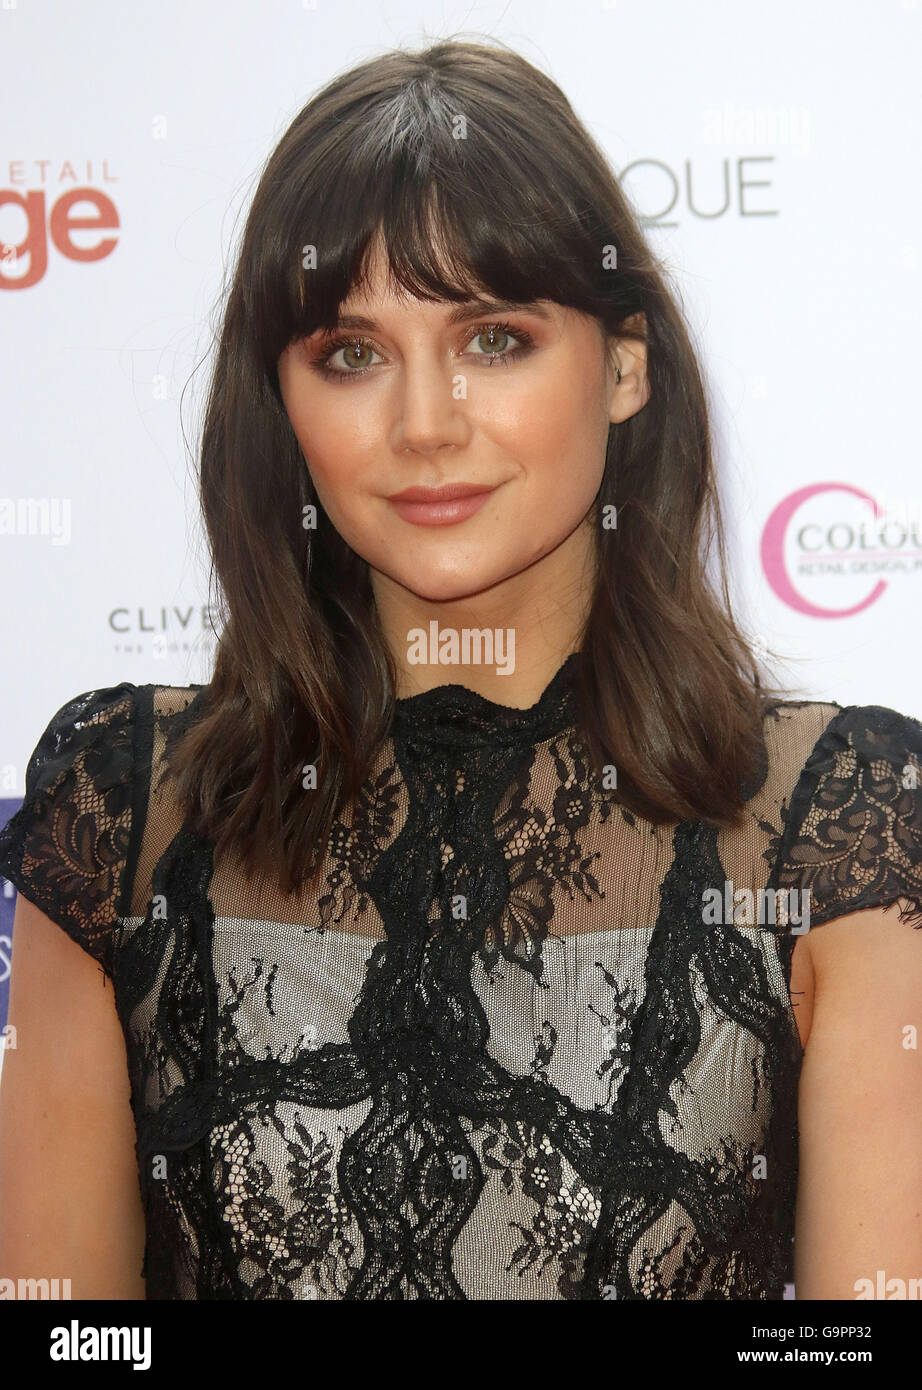 May 10, 2016 - Lilah Parsons attending The Fragrance Foundation Awards at The Brewery in London, UK. - Stock Image